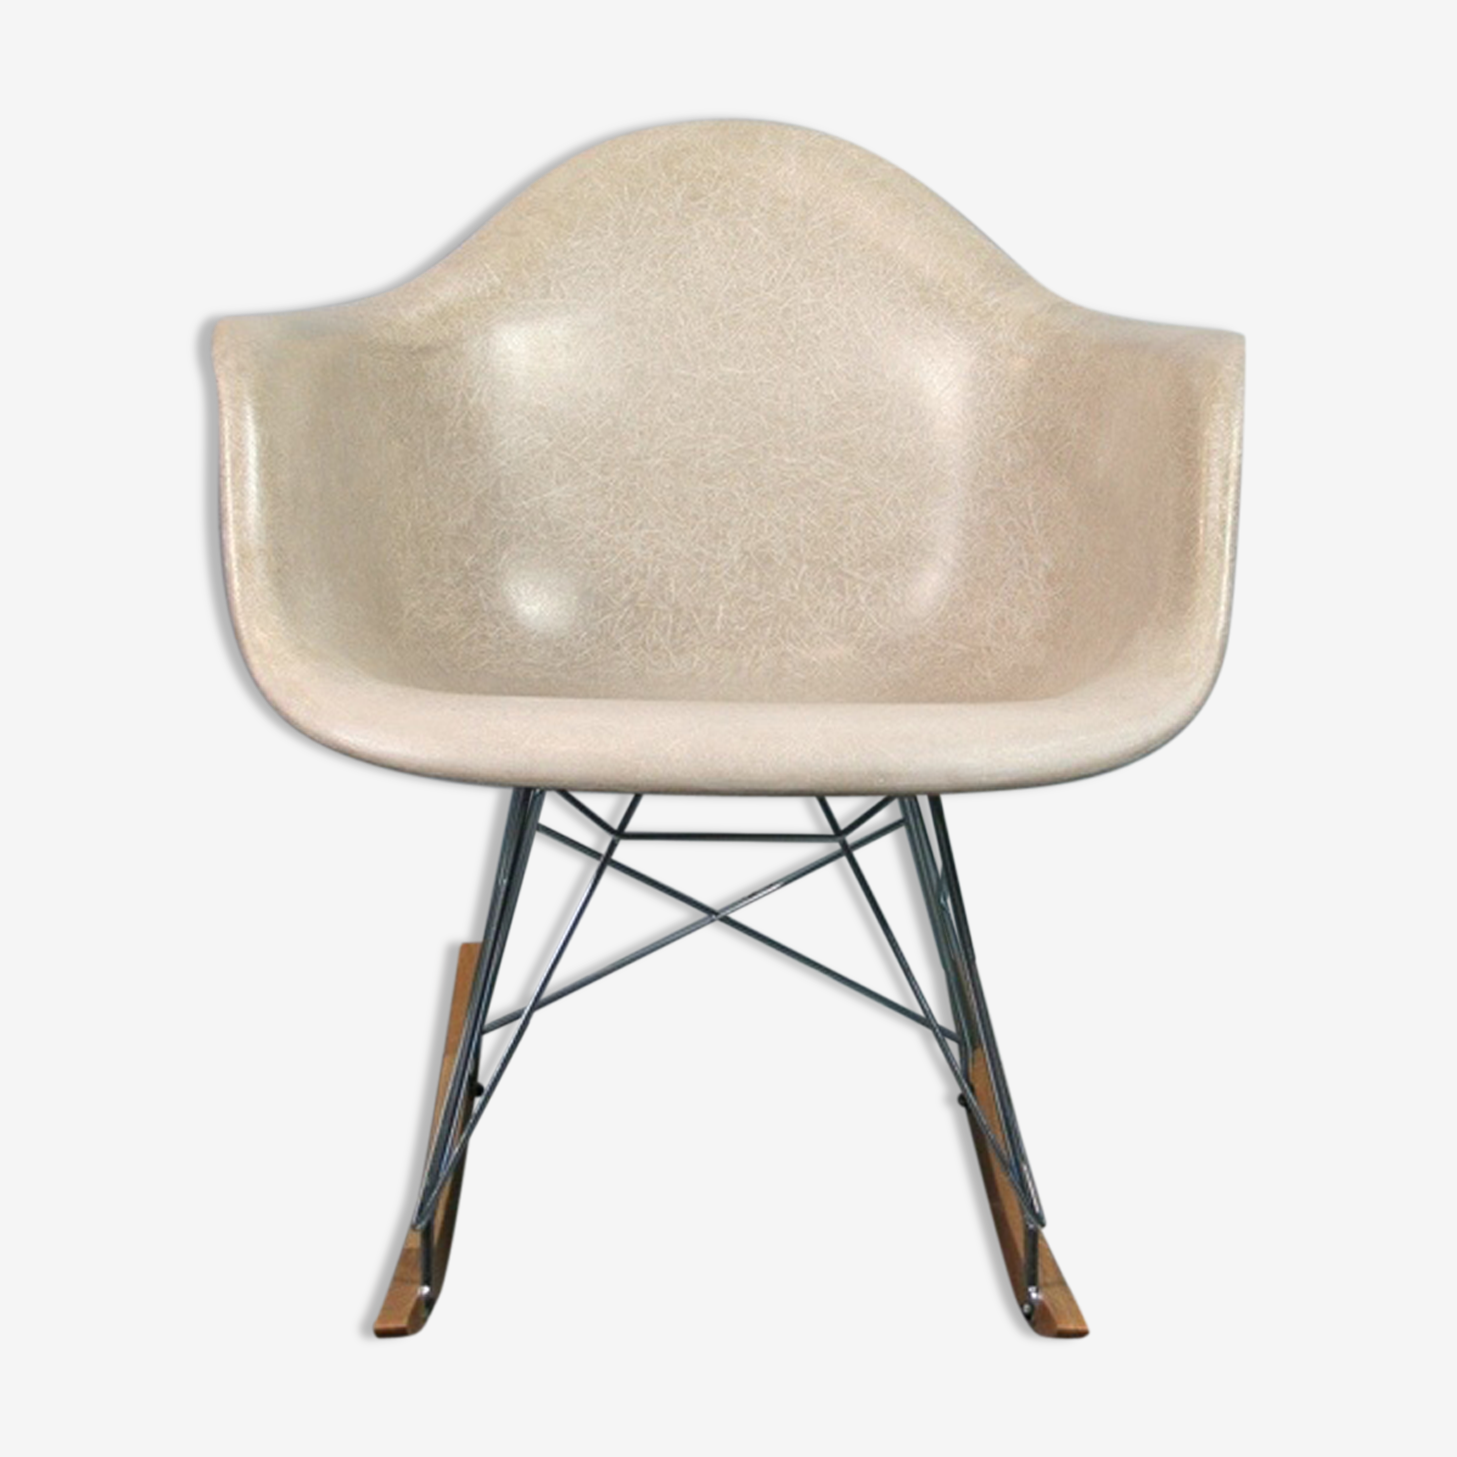 Rocking-chair RAR by Eames for Herman Miller